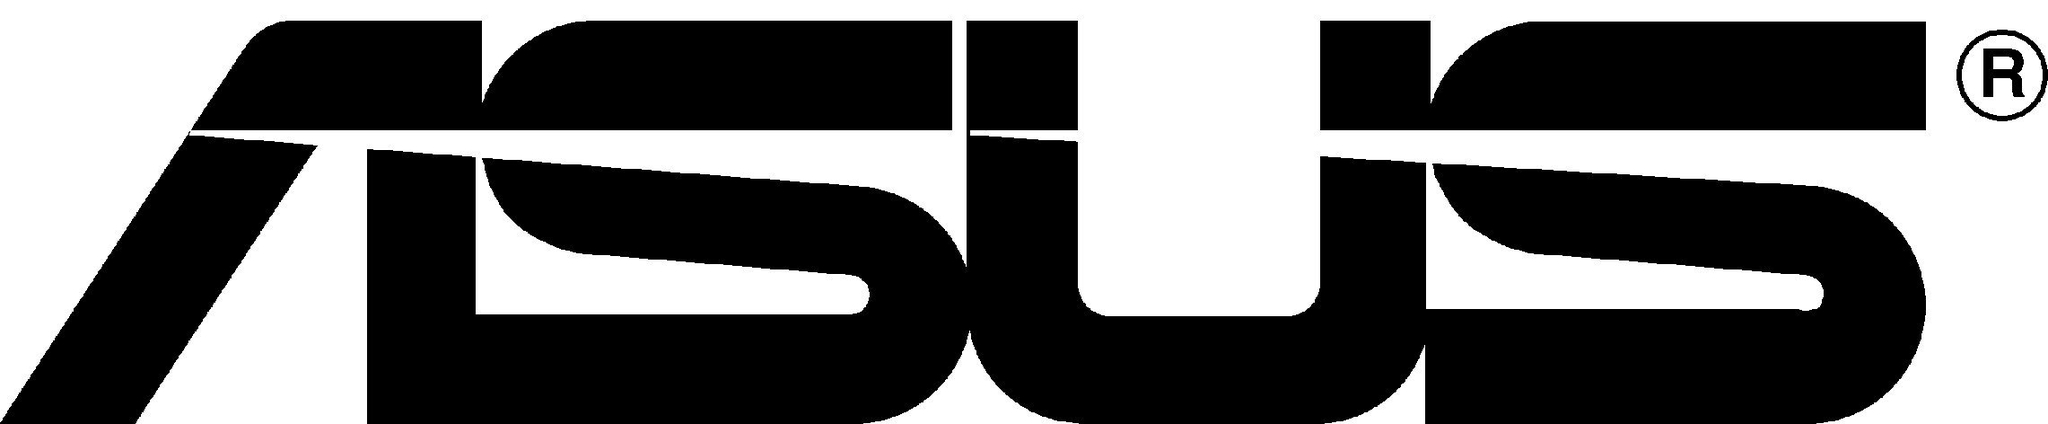 Image result for ASUS logo jpg